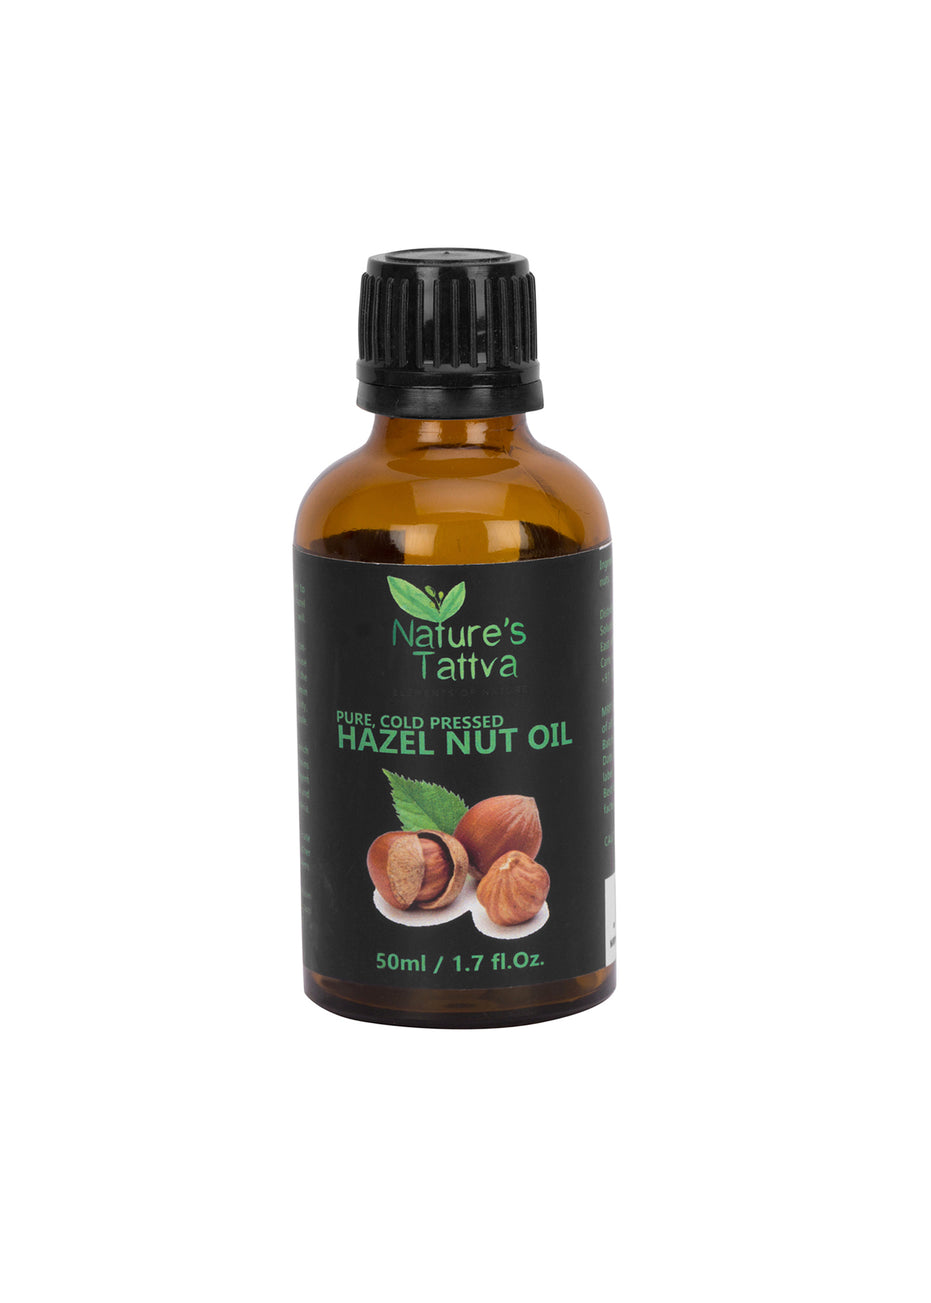 Nature's Tattva Pure Hazelnut Carrier Oil, 50 ml, Hair Oil, Nature's Tattva, ihaat, [made_in_india], [handmade] - ihaat